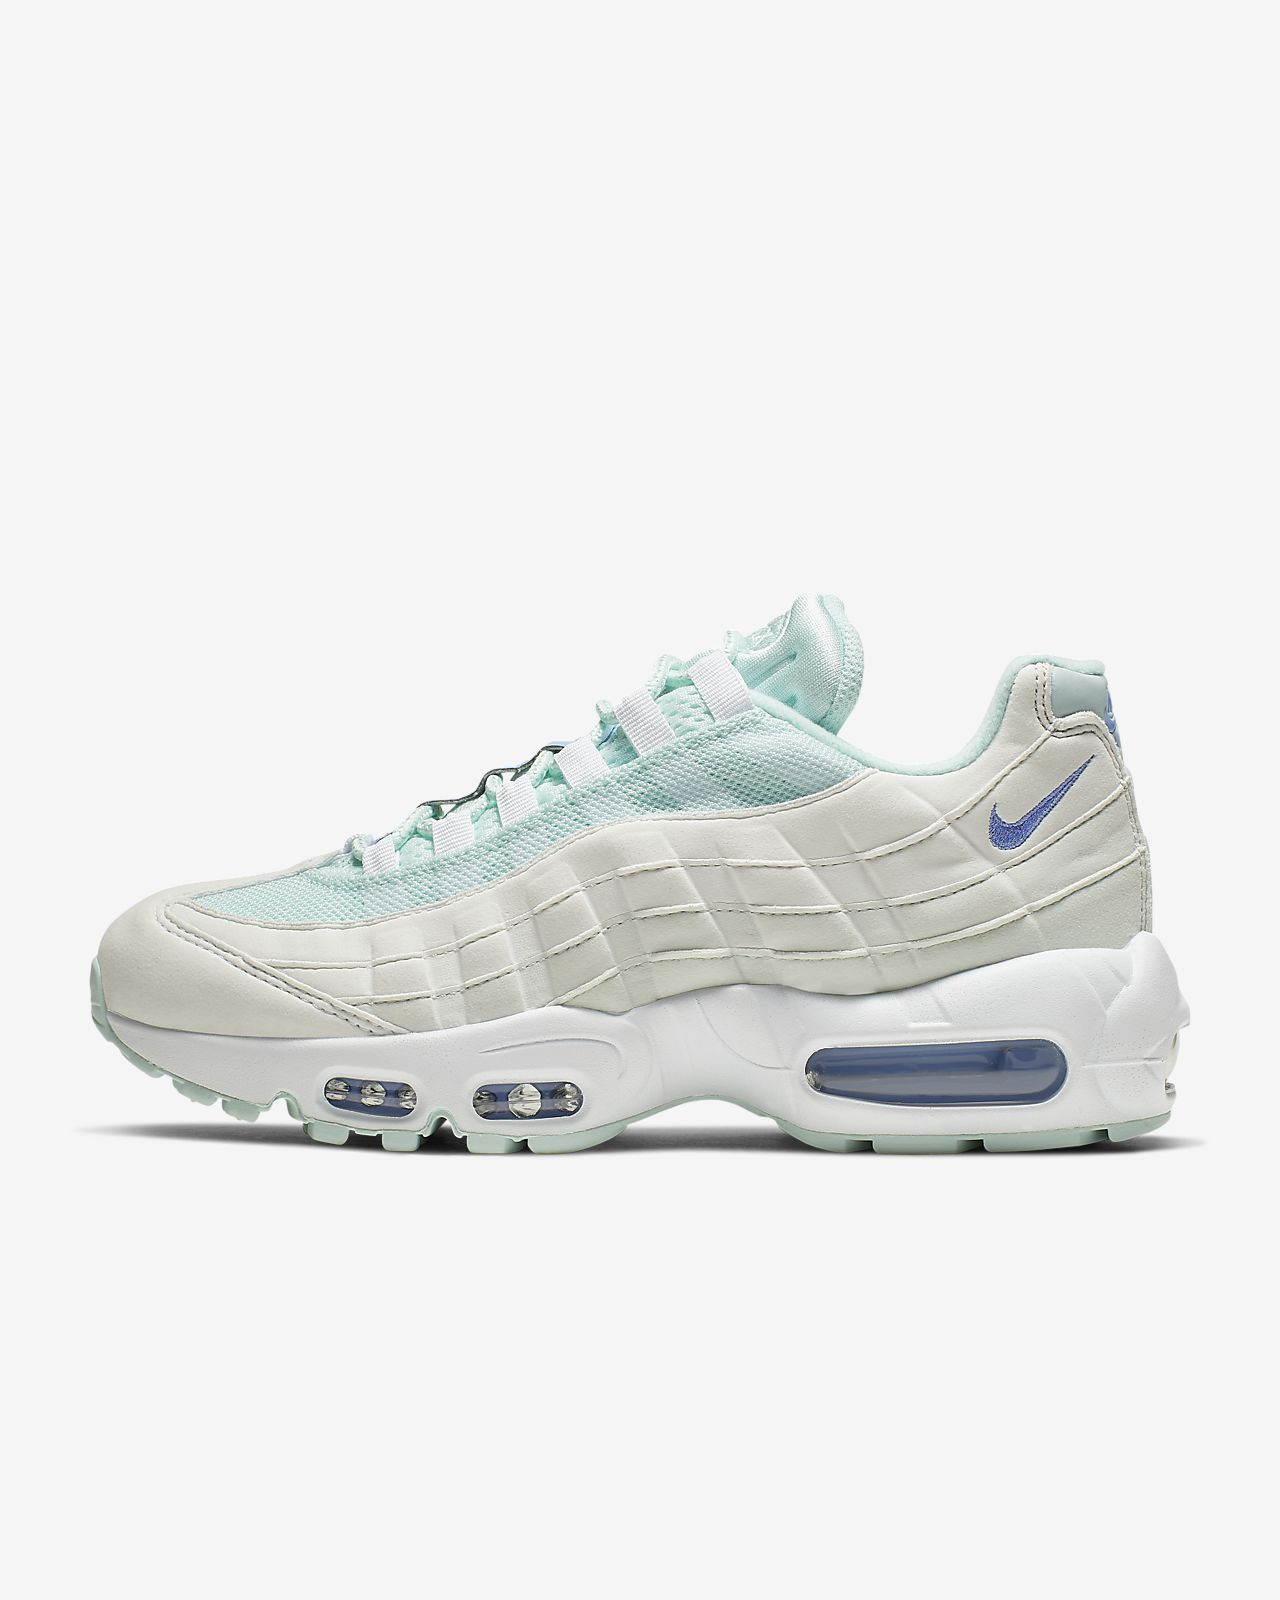 38243fa2da254 Nike Air Max 95 Women's Shoe. Nike.com